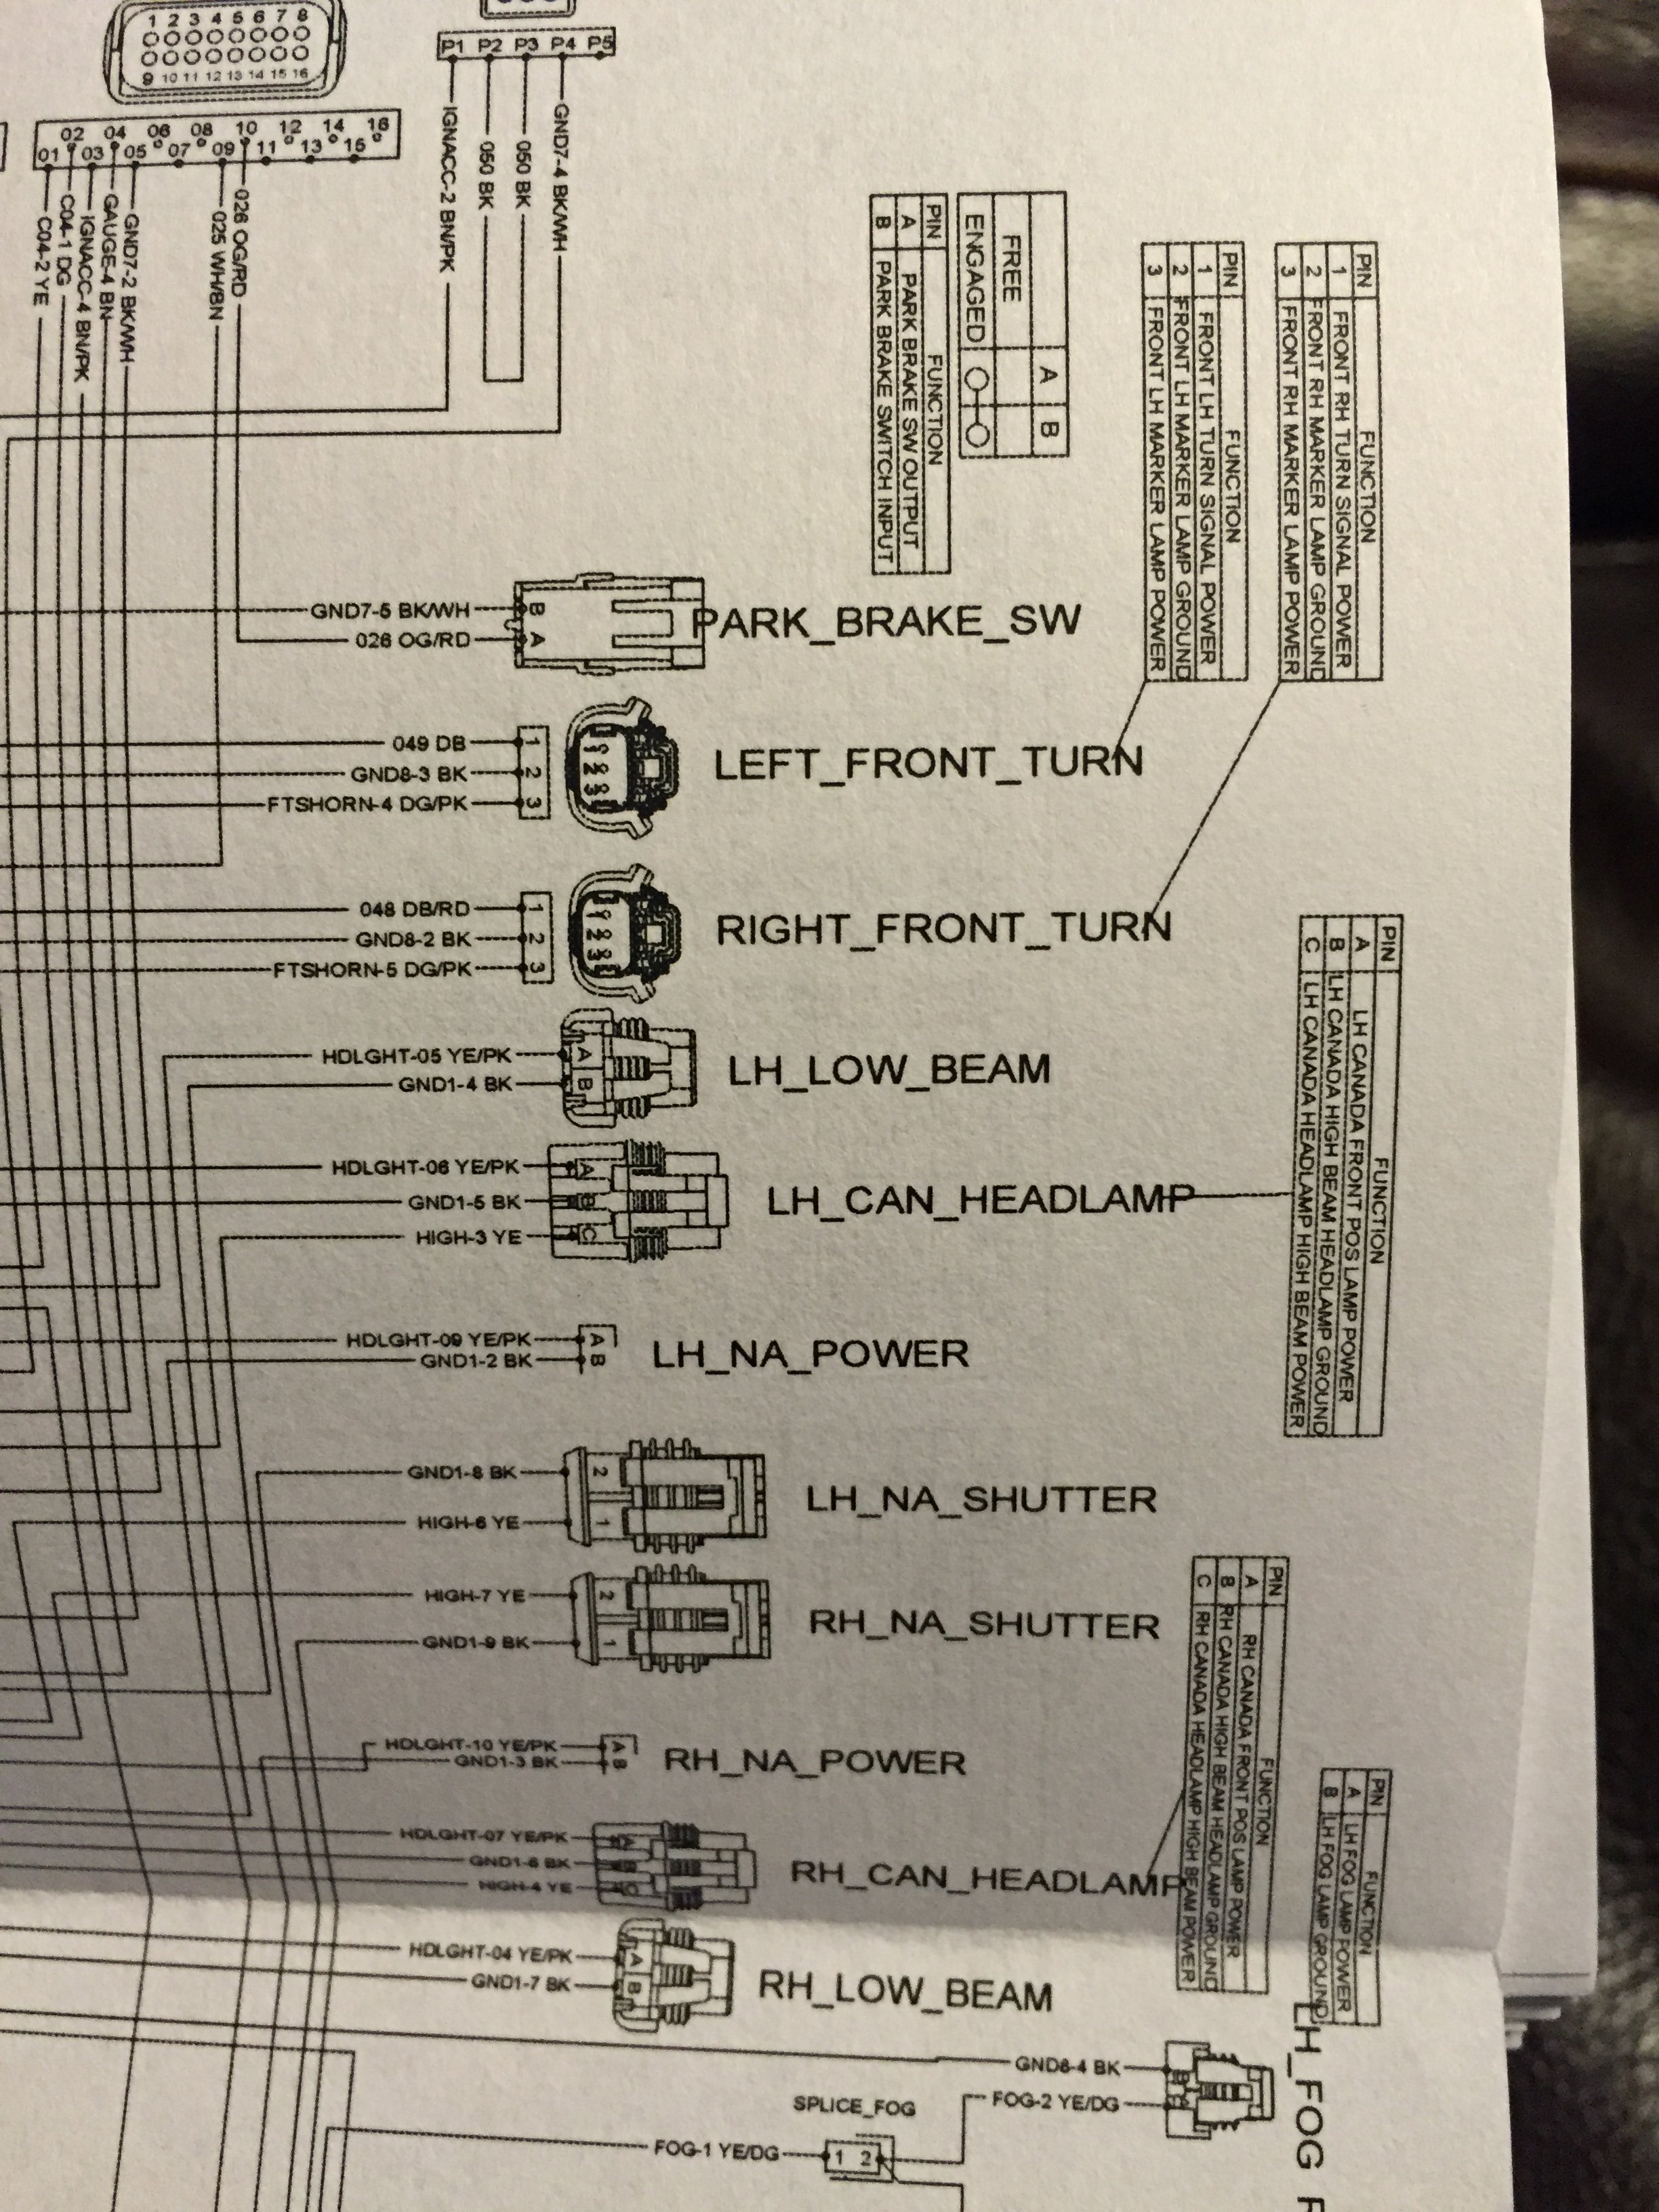 headlight wiring diagram needed polaris slingshot forum polaris slingshot radio wiring diagram at virtualis.co